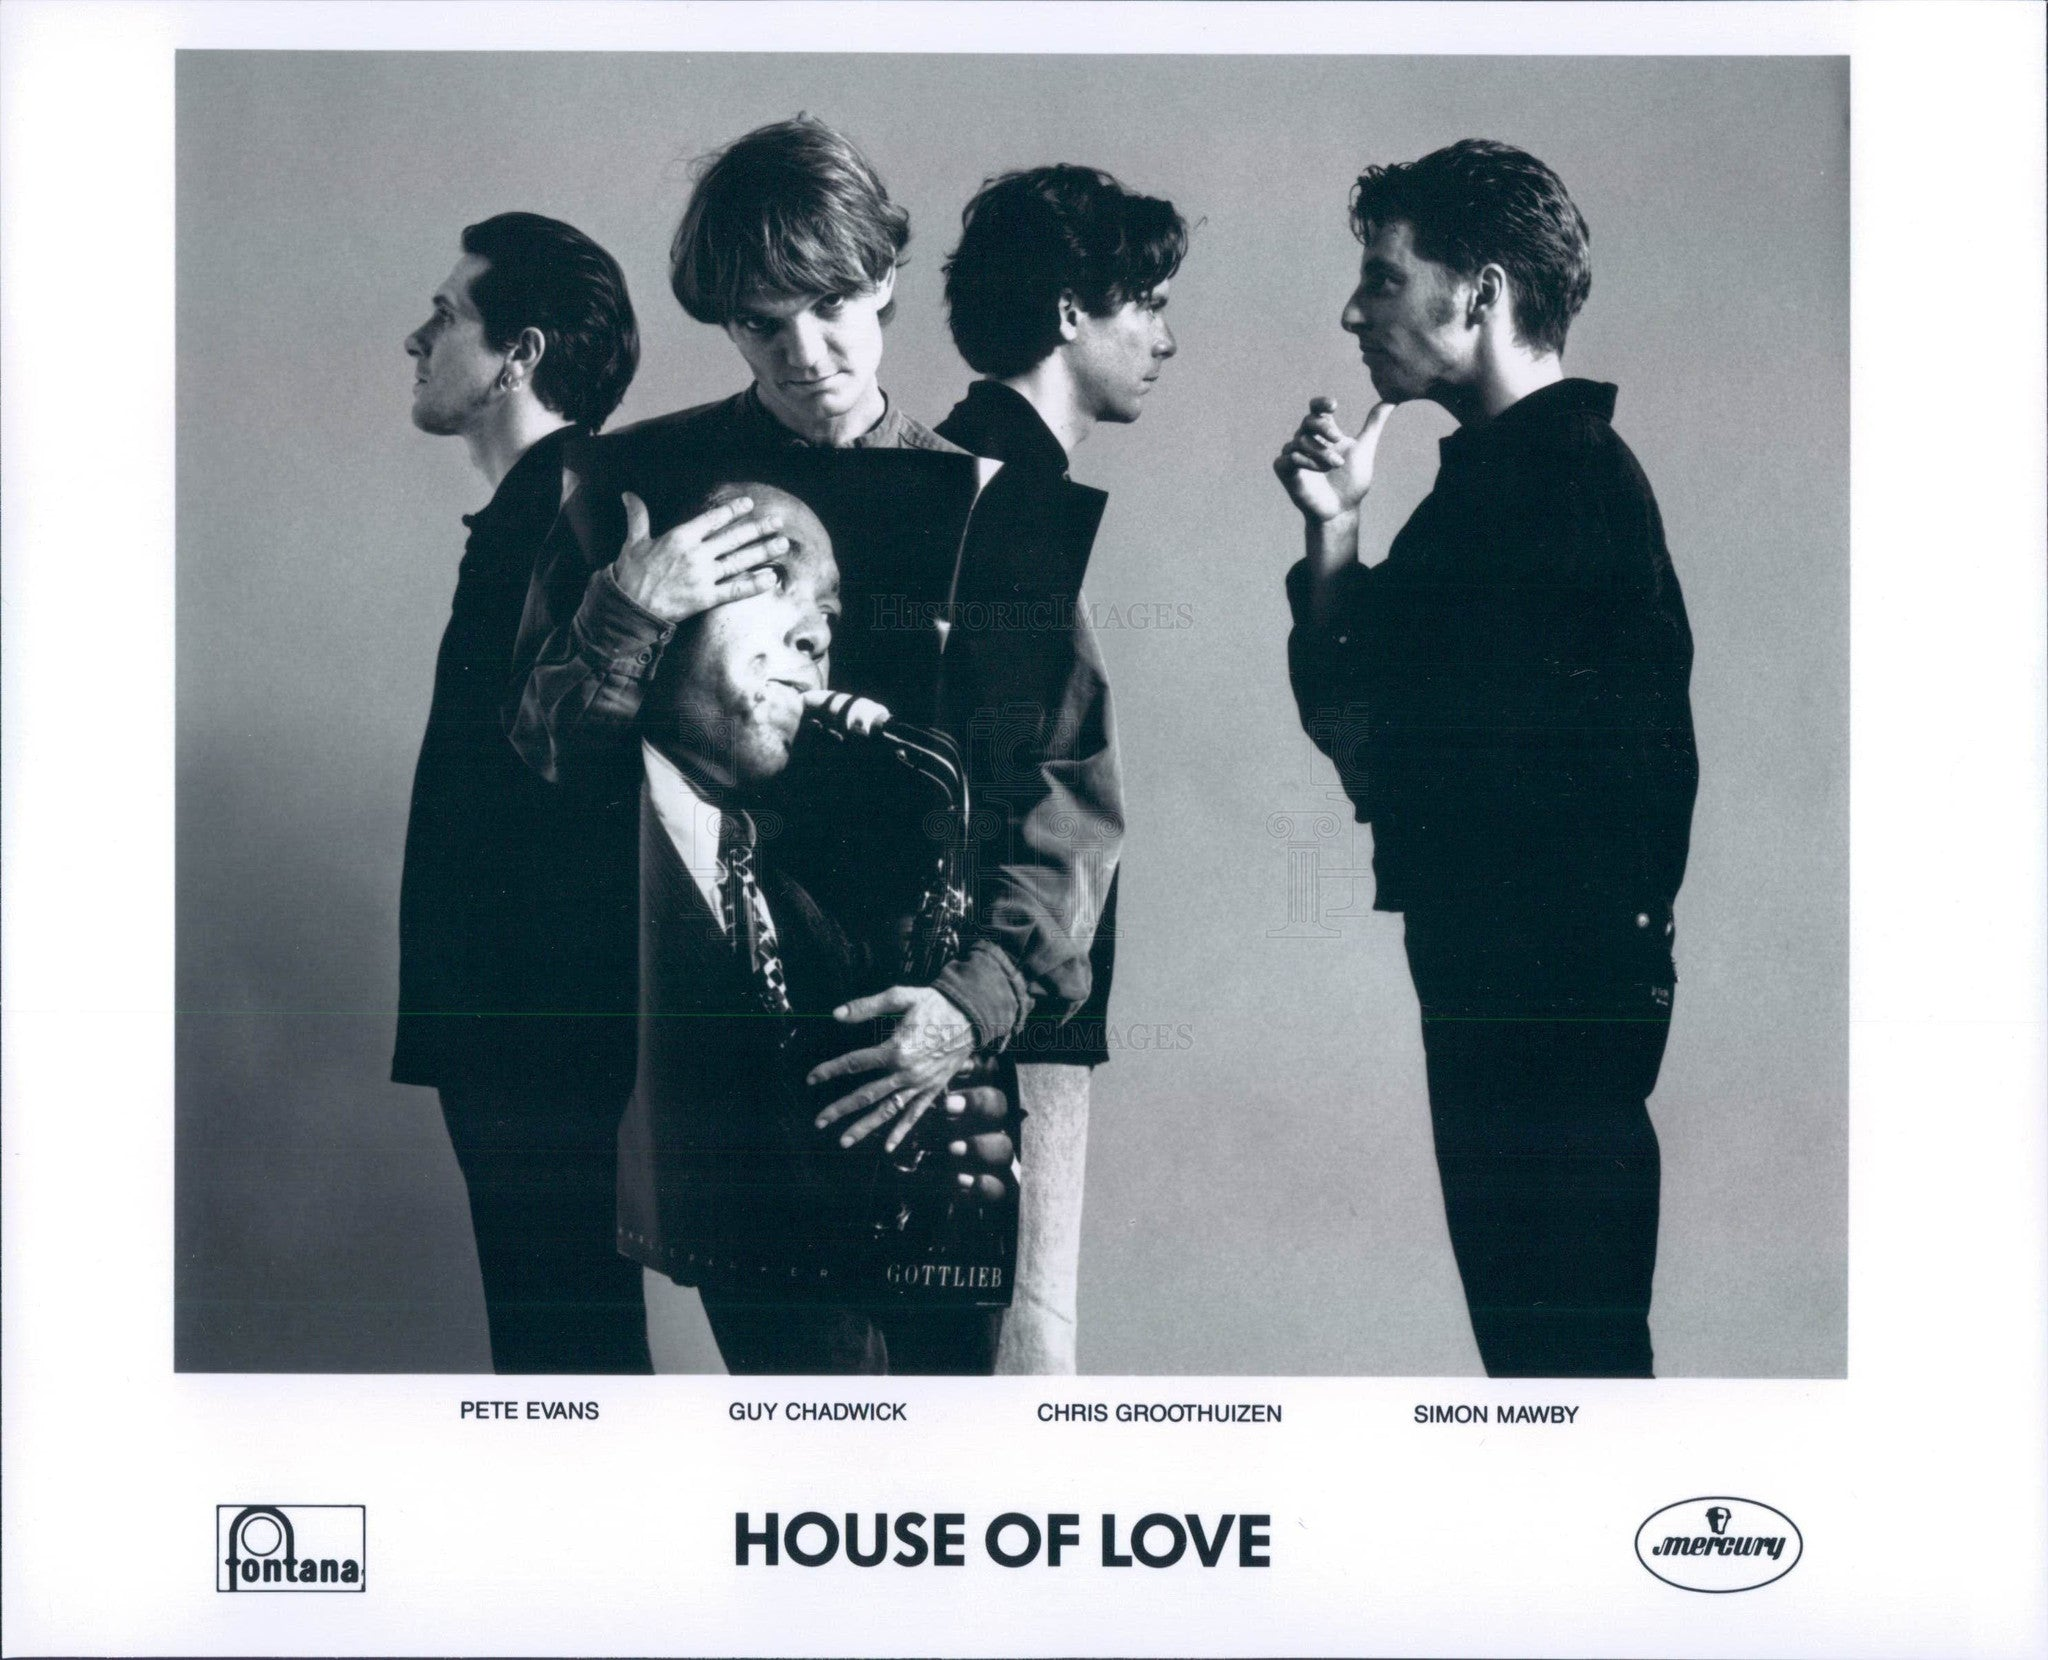 1993 English Rock Band House of Love Press Photo - Historic Images